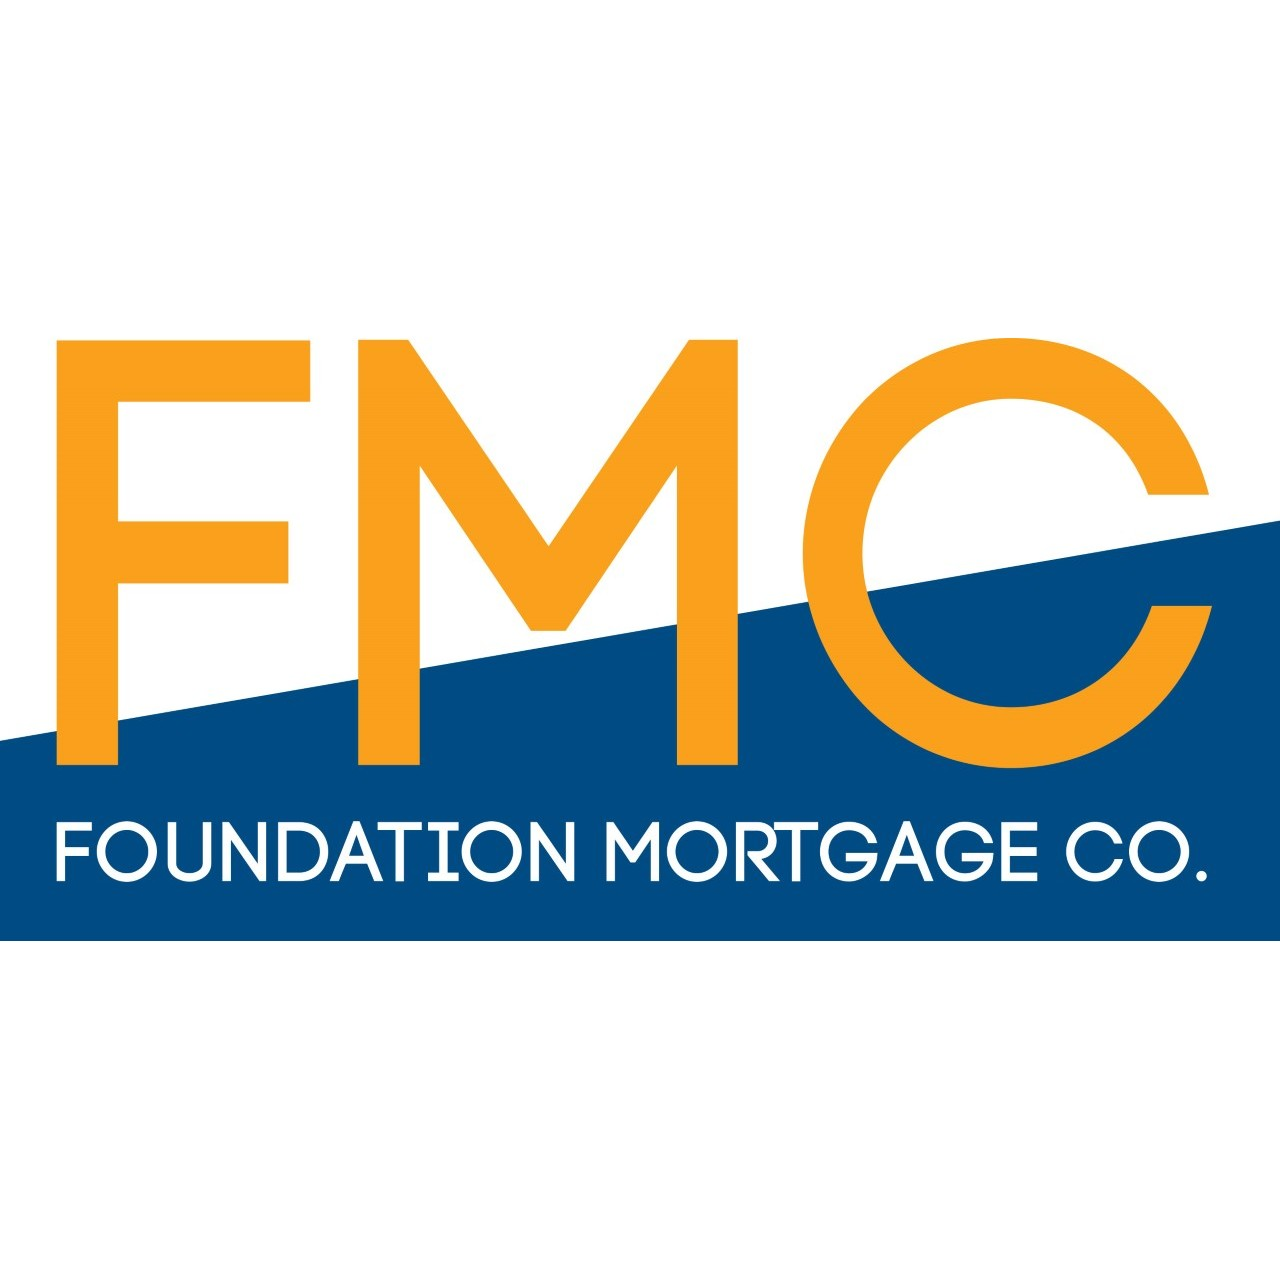 Foundation Mortgage Company In Knoxville, Tn  Mortgage. Define Money Market Deposit Account. Petroleum Technology Degree Online. First Time Condo Buyer Checkout Point Of Sale. All Friends Animal Clinic Nurse Working Hours. High Speed Internet Louisiana. Allstate Car Insurance Discounts. Montgomery College Registrar. Td Auto Finance Customer Service